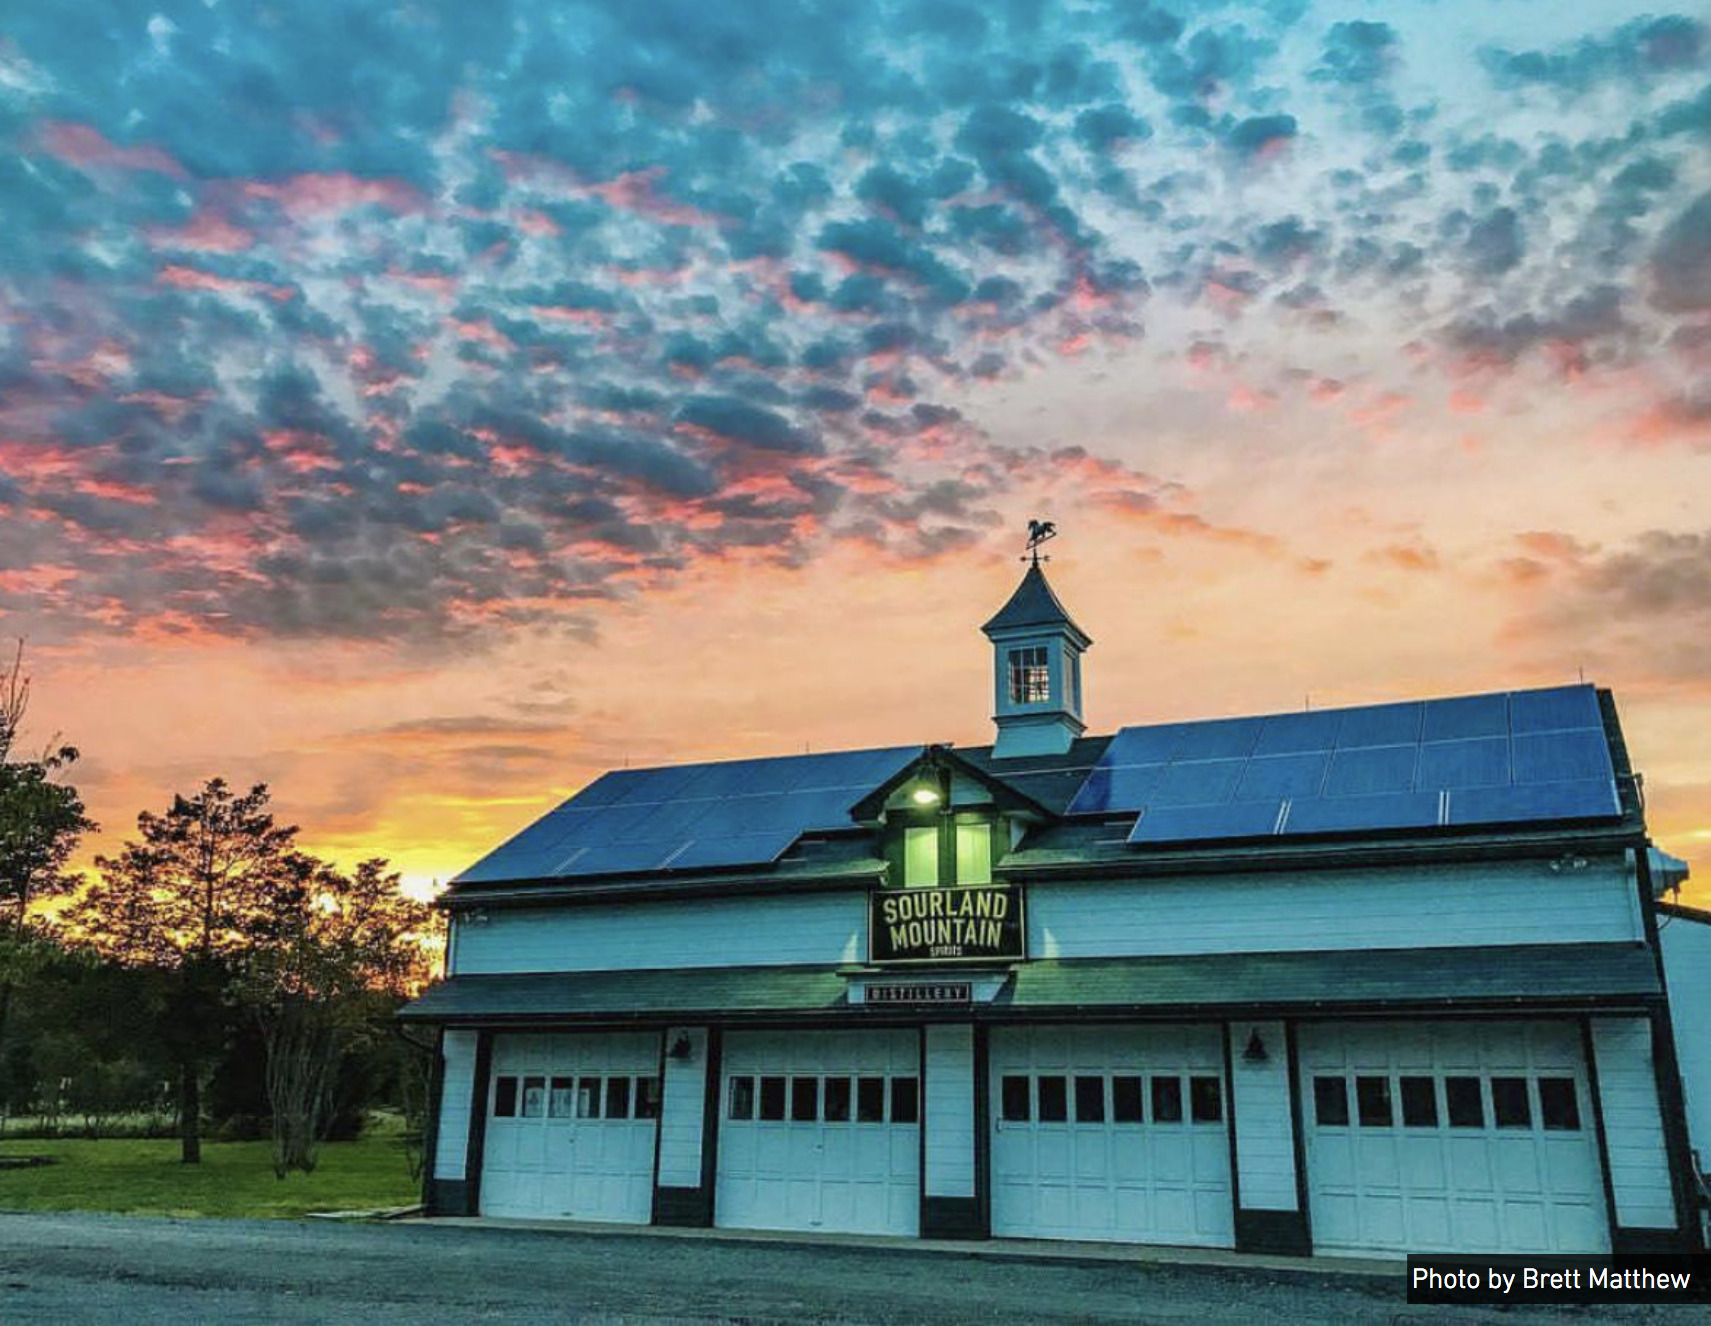 Sourland Mountain Spirits is located on the 800-acre Double Brook Farm in Hopewell, New Jersey.